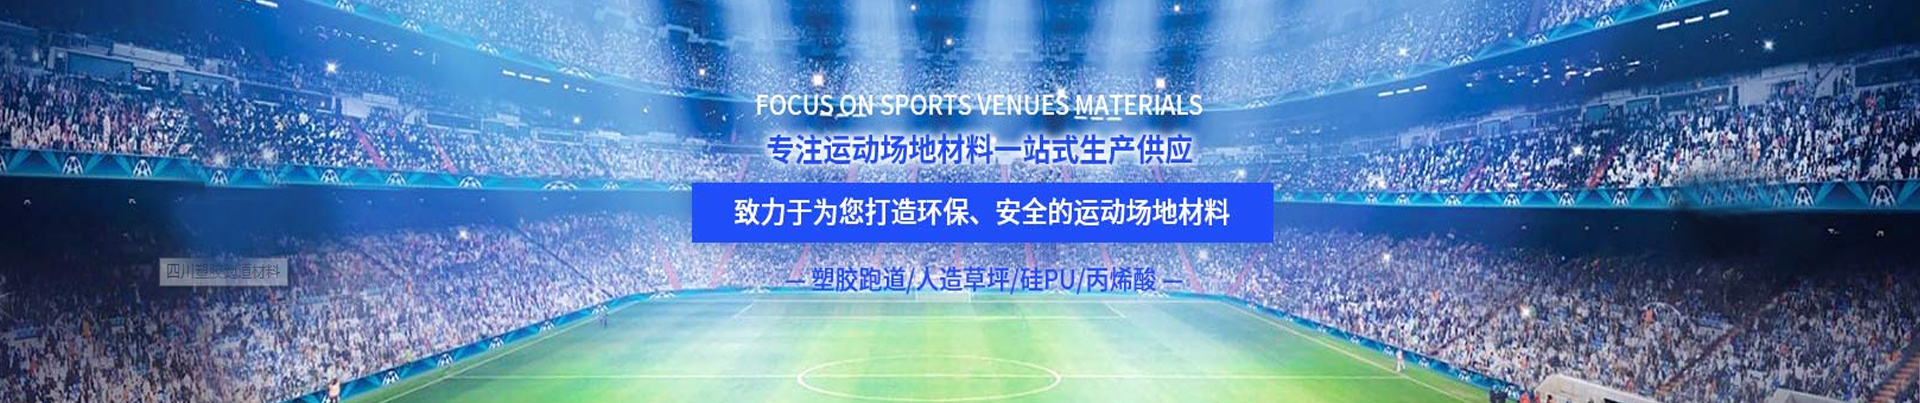 http://www.sccyty.cn/data/upload/202008/20200811145646_680.jpg